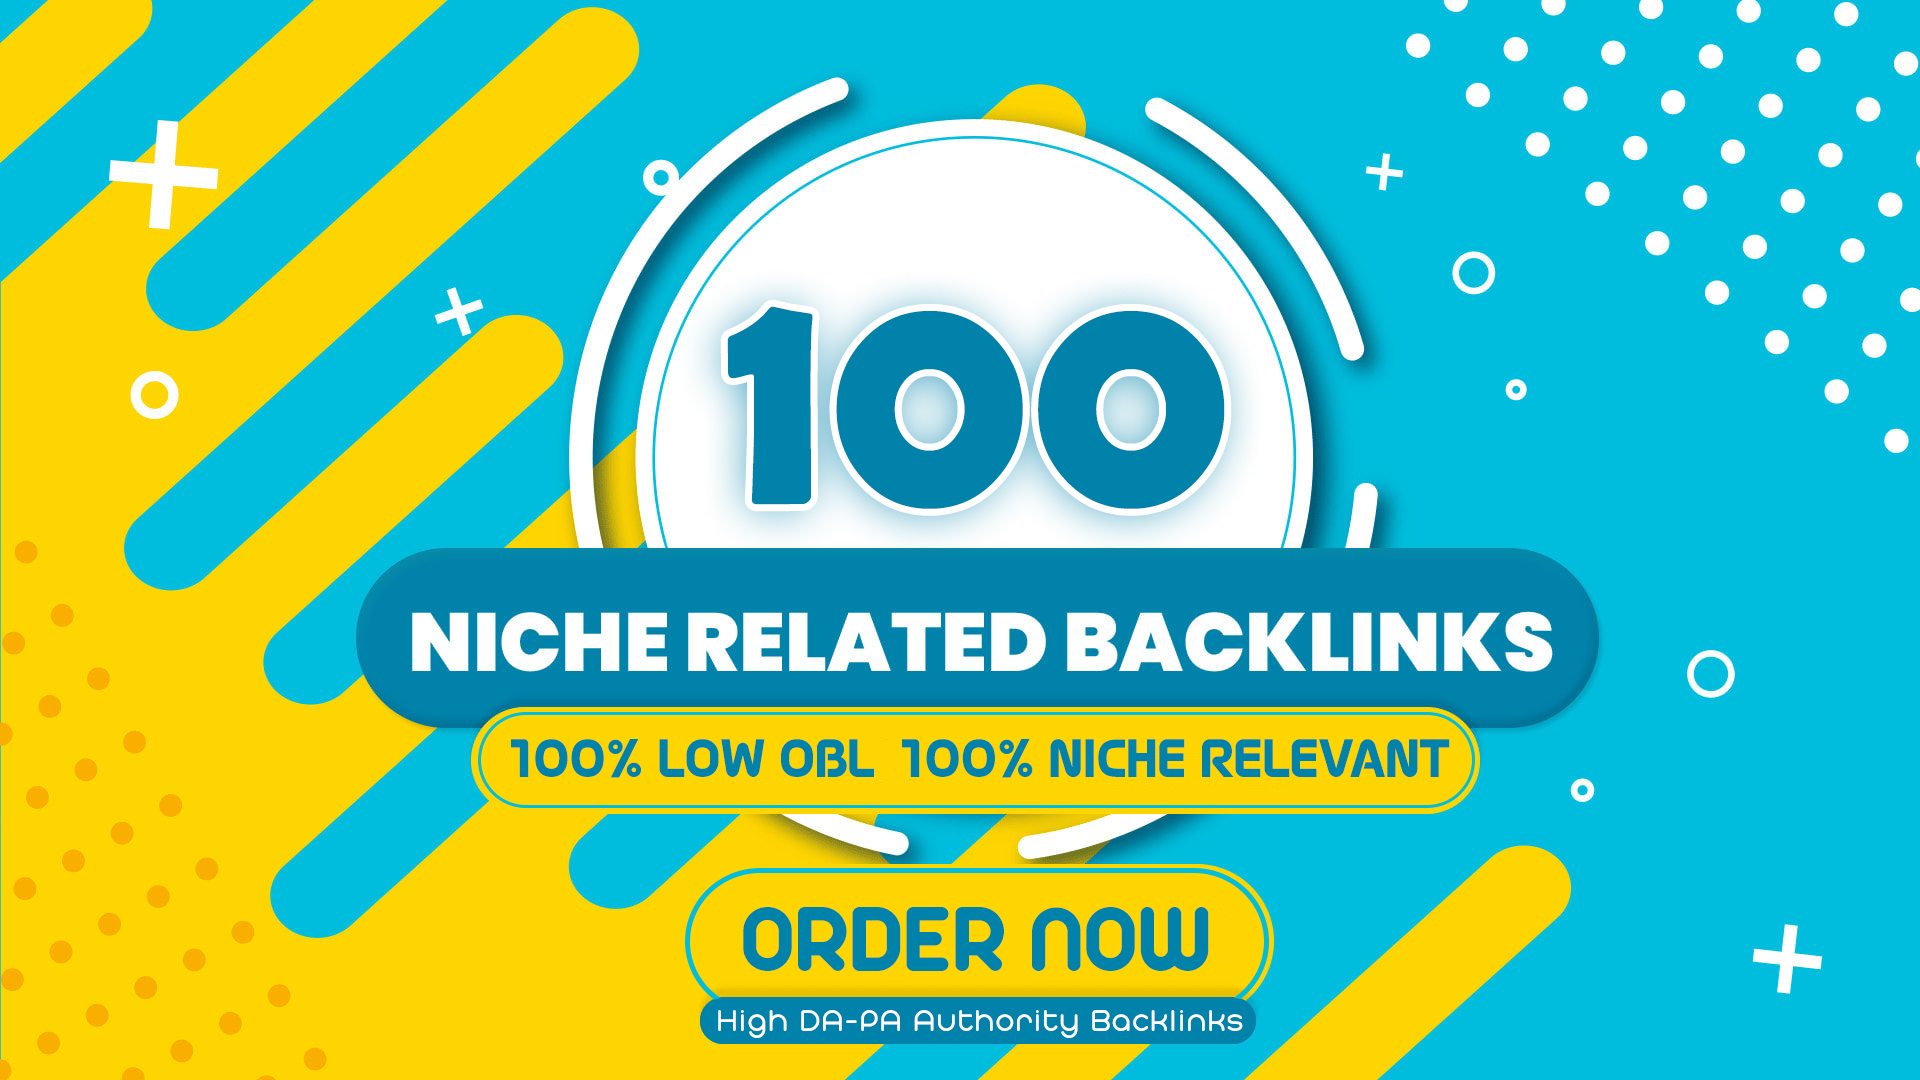 I Will Provide 100 Niche Related Blog Comments Backlinks On High DA-PA